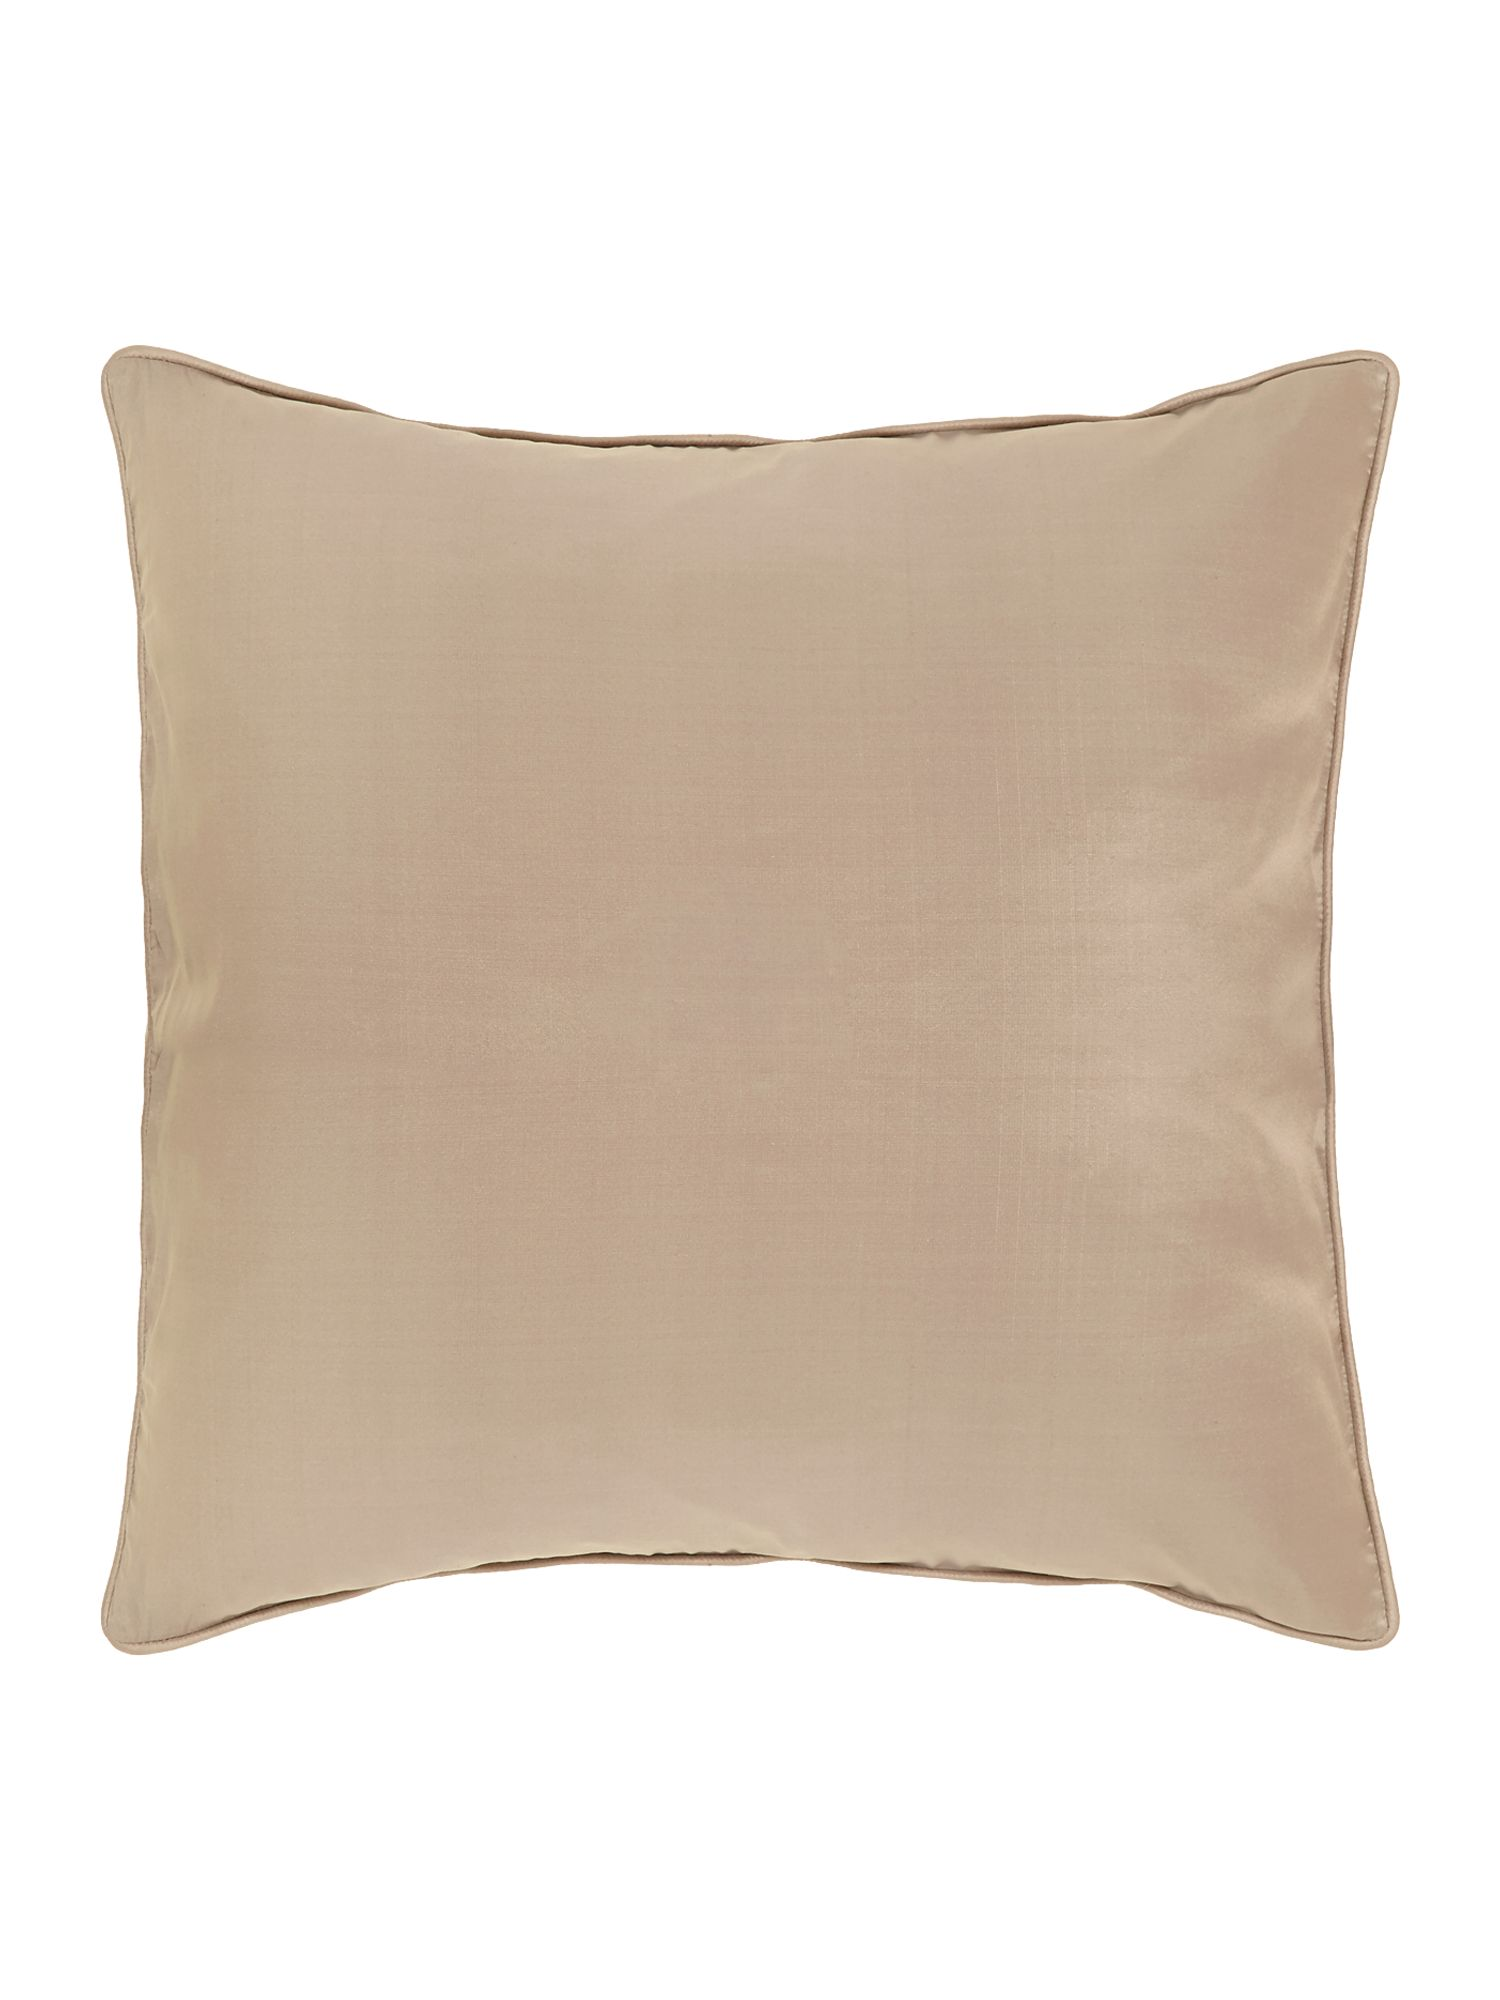 Oversized silk cushion, Latte